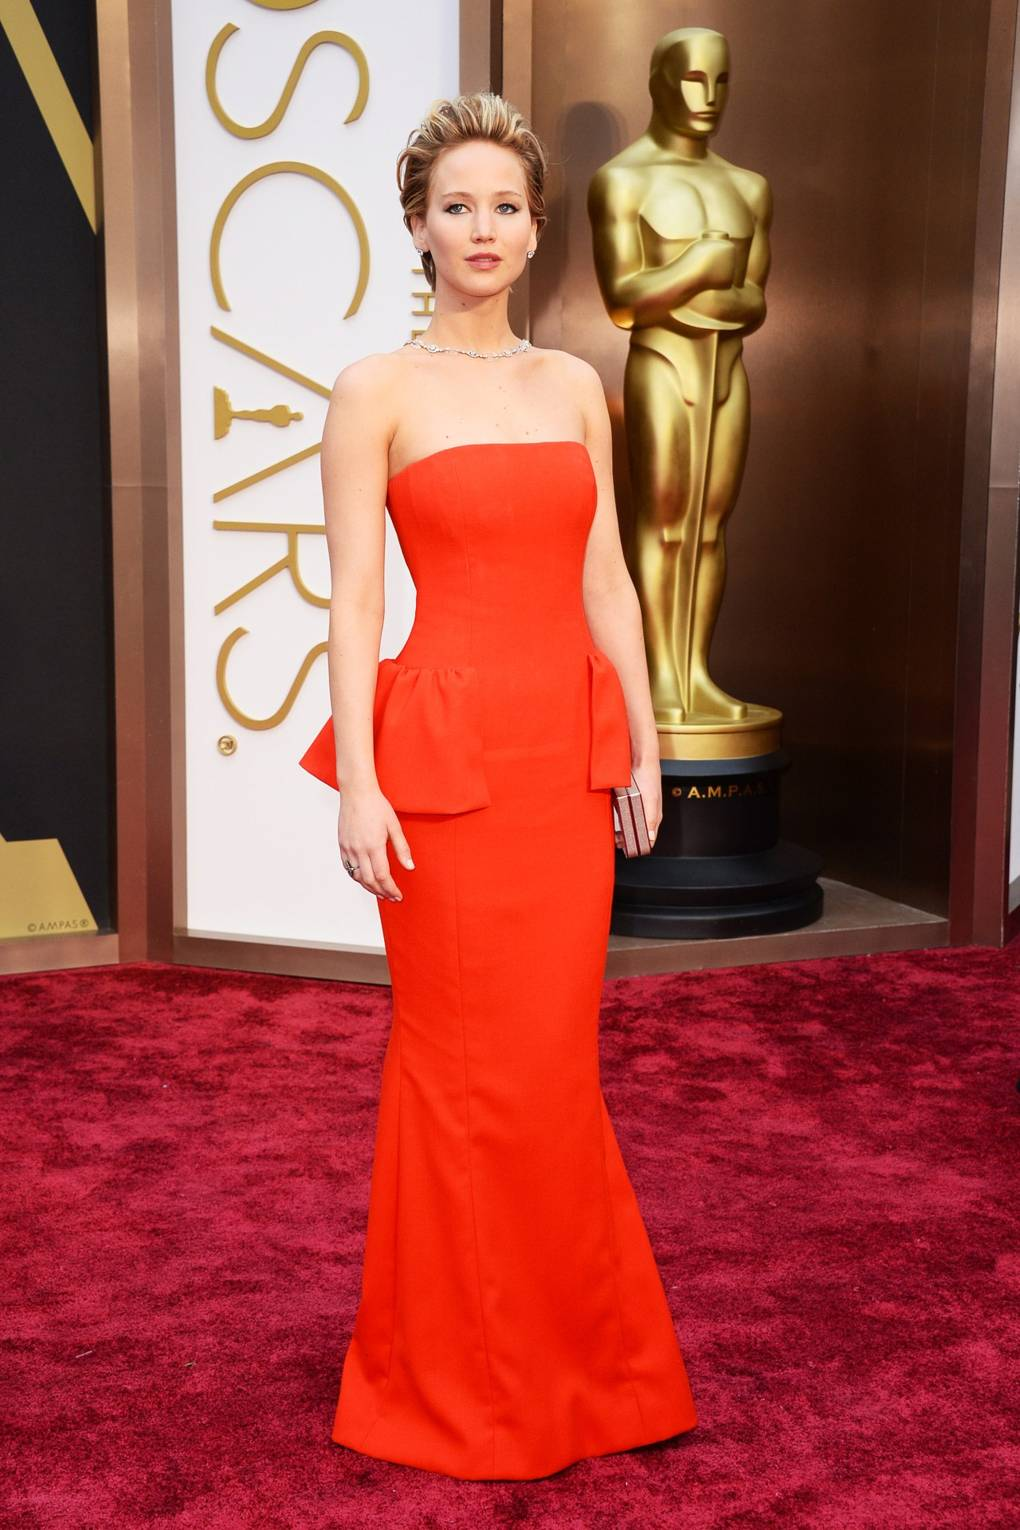 Oscars 2014 – Red Carpet Dresses & Outfit Picture Gallery | British